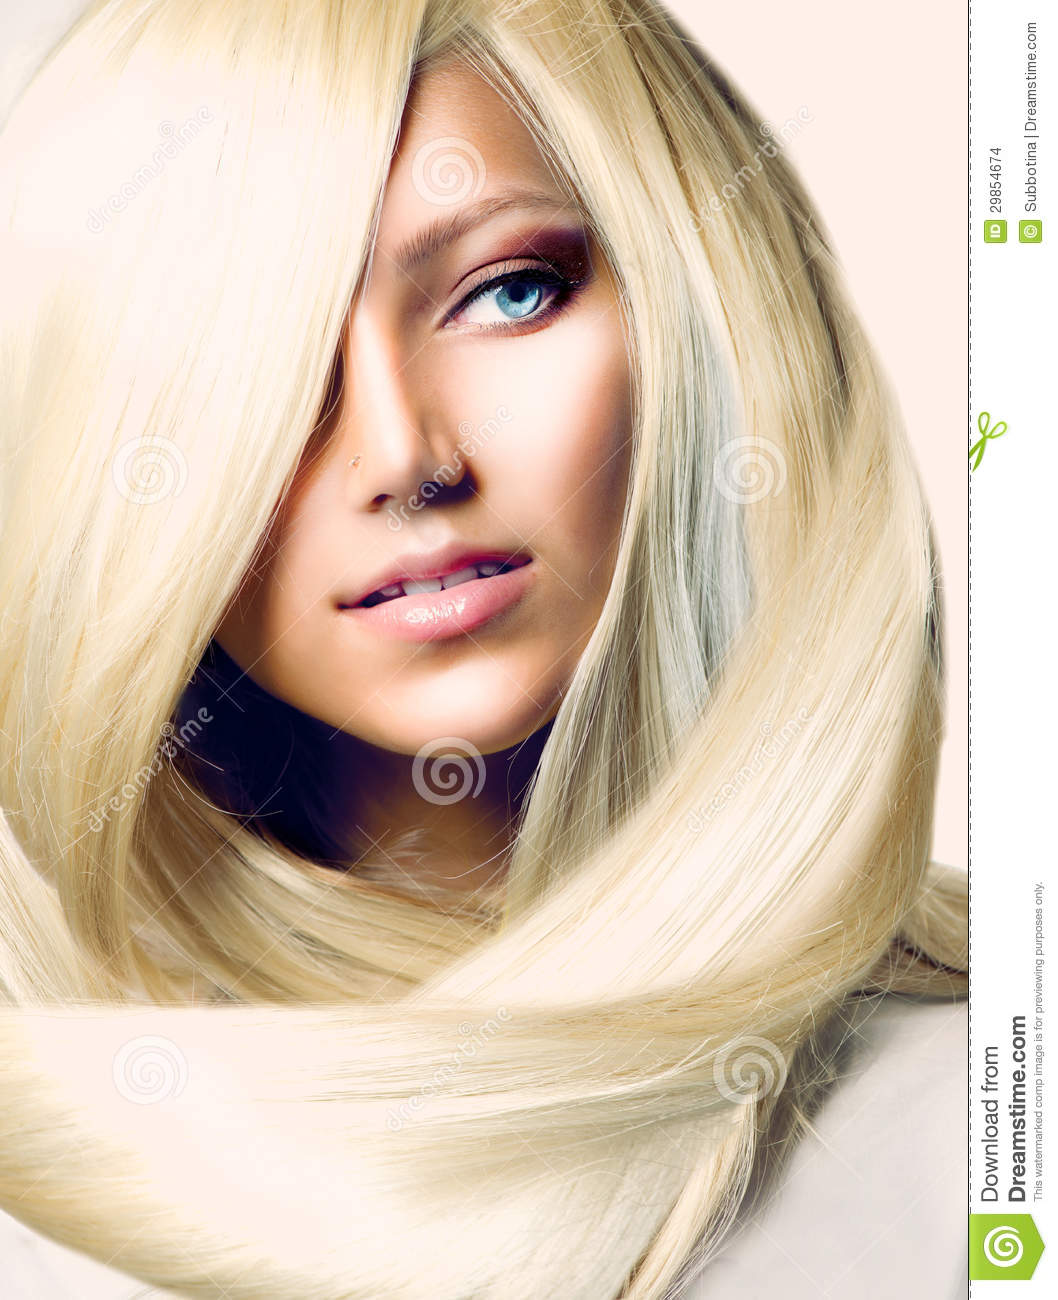 girl with long blond hair stock images   image 29854674